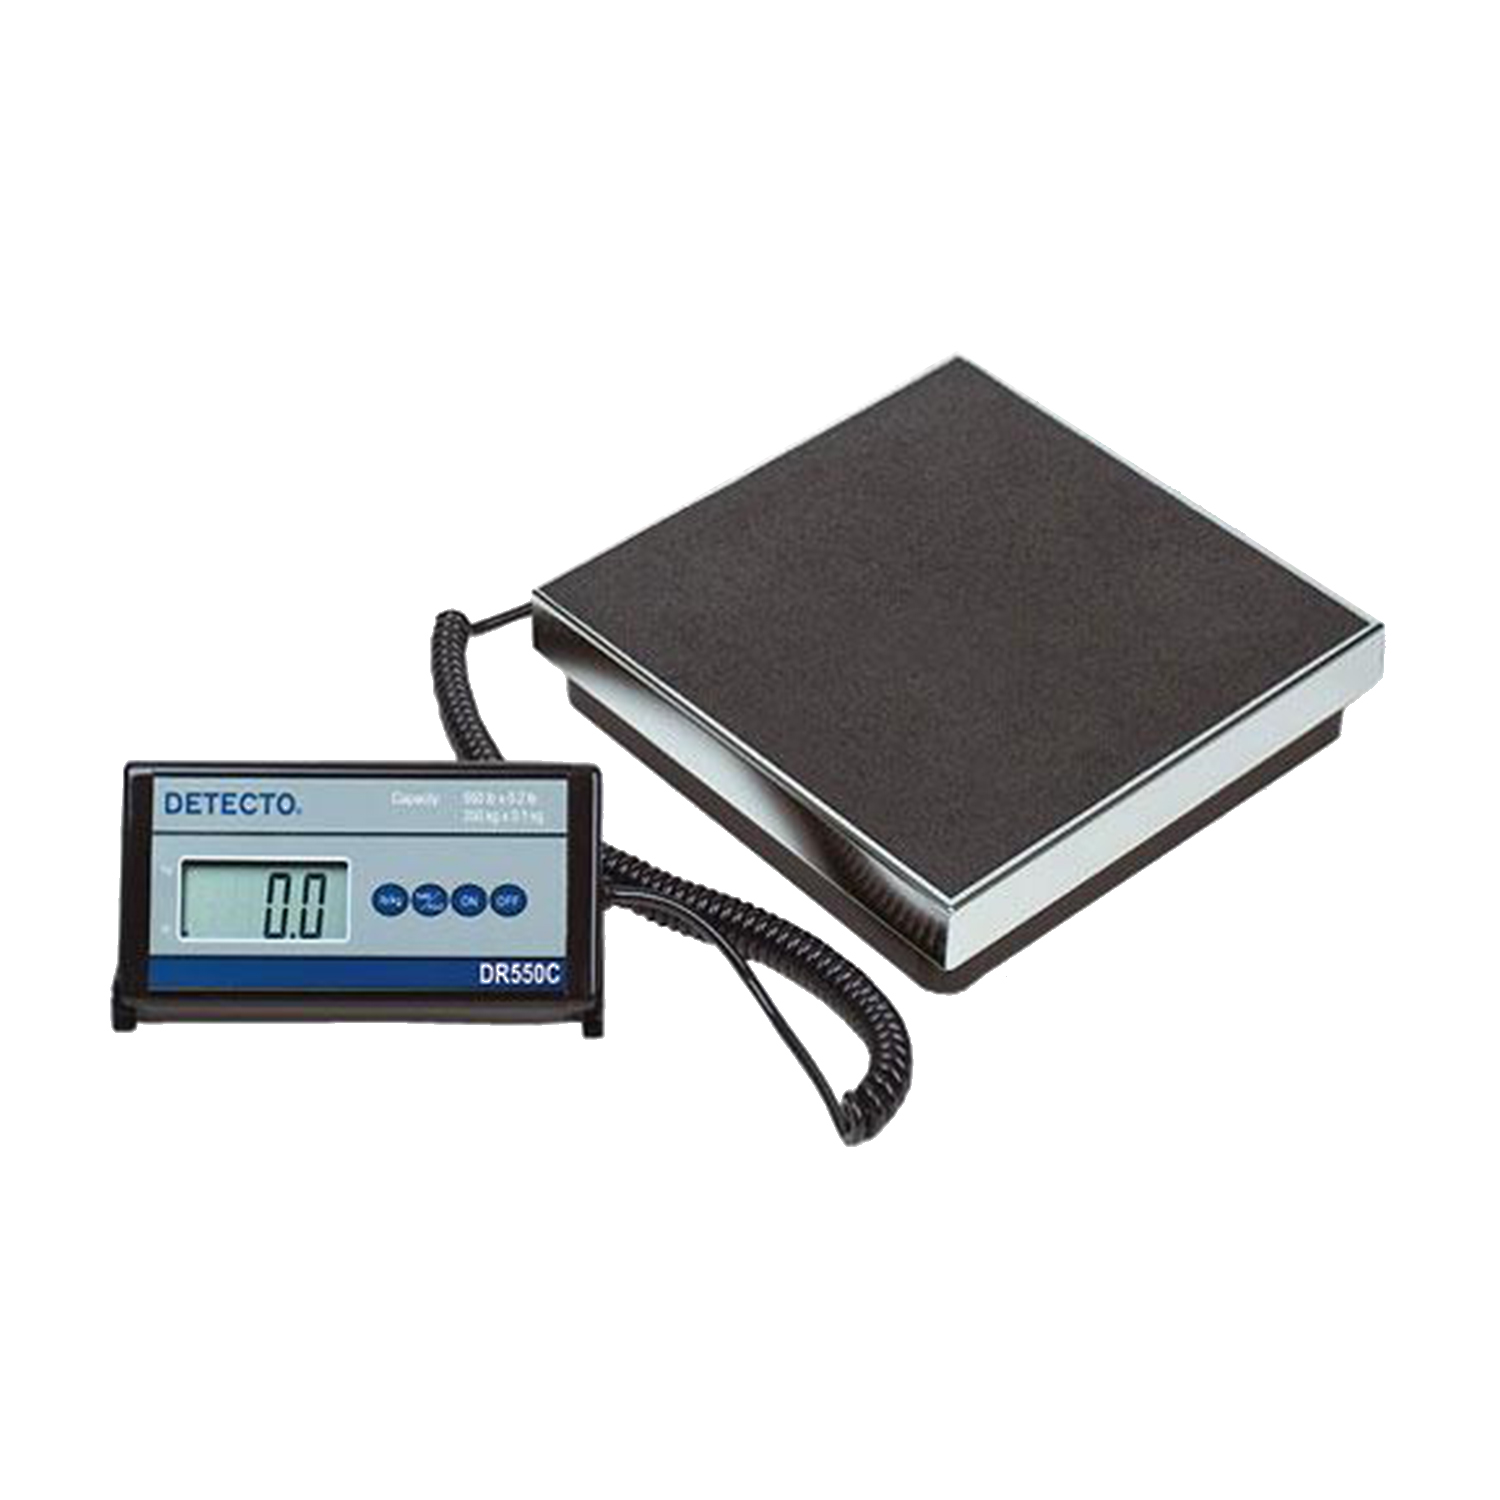 Detecto DR550C - Stainless Steel Floor Scale